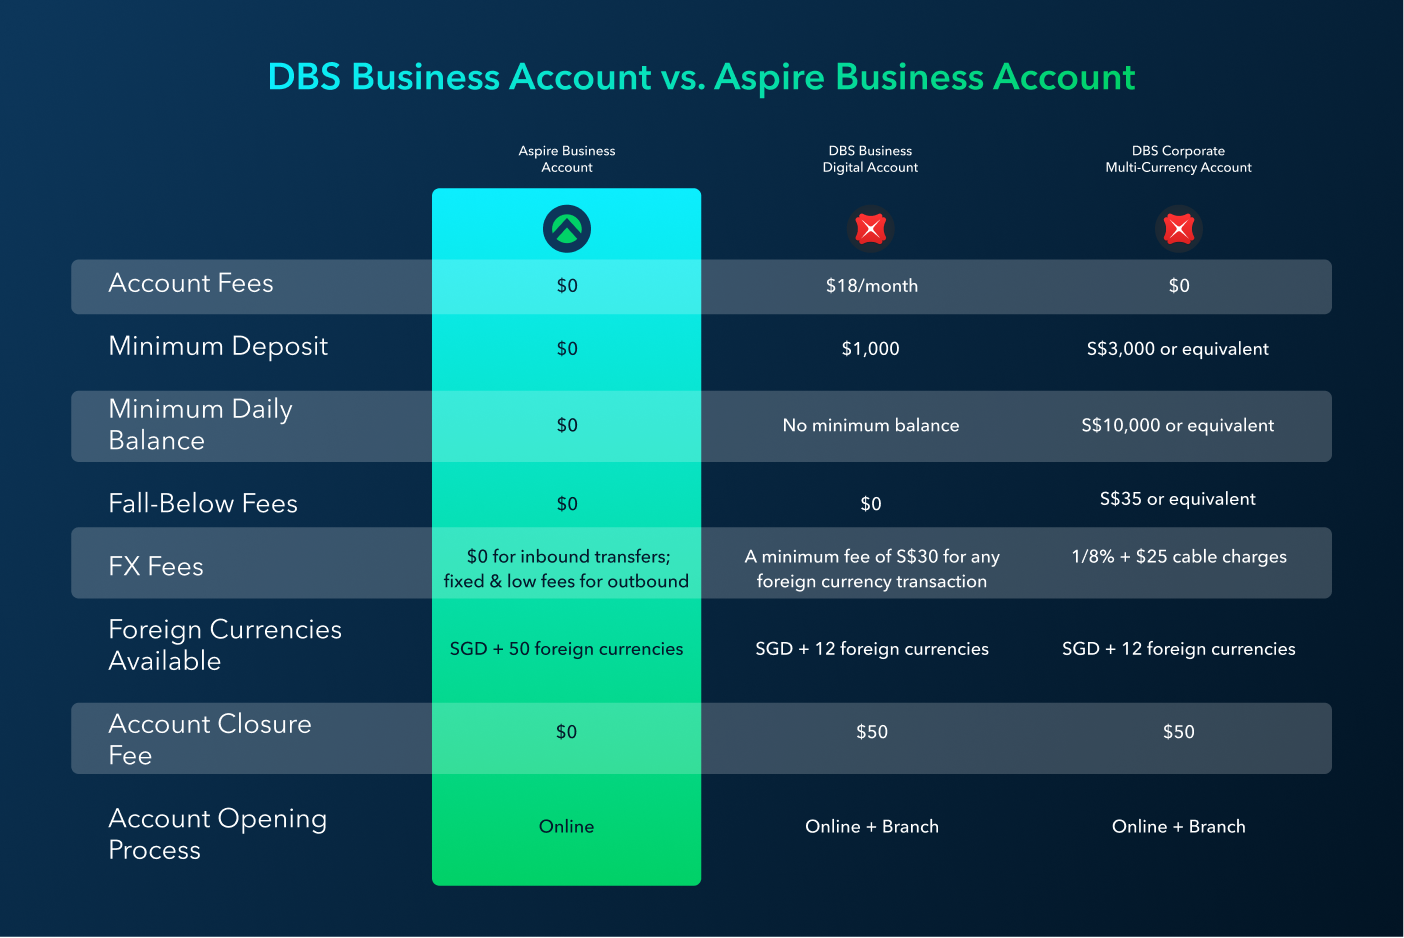 DBS Business Account vs. Aspire Business Account